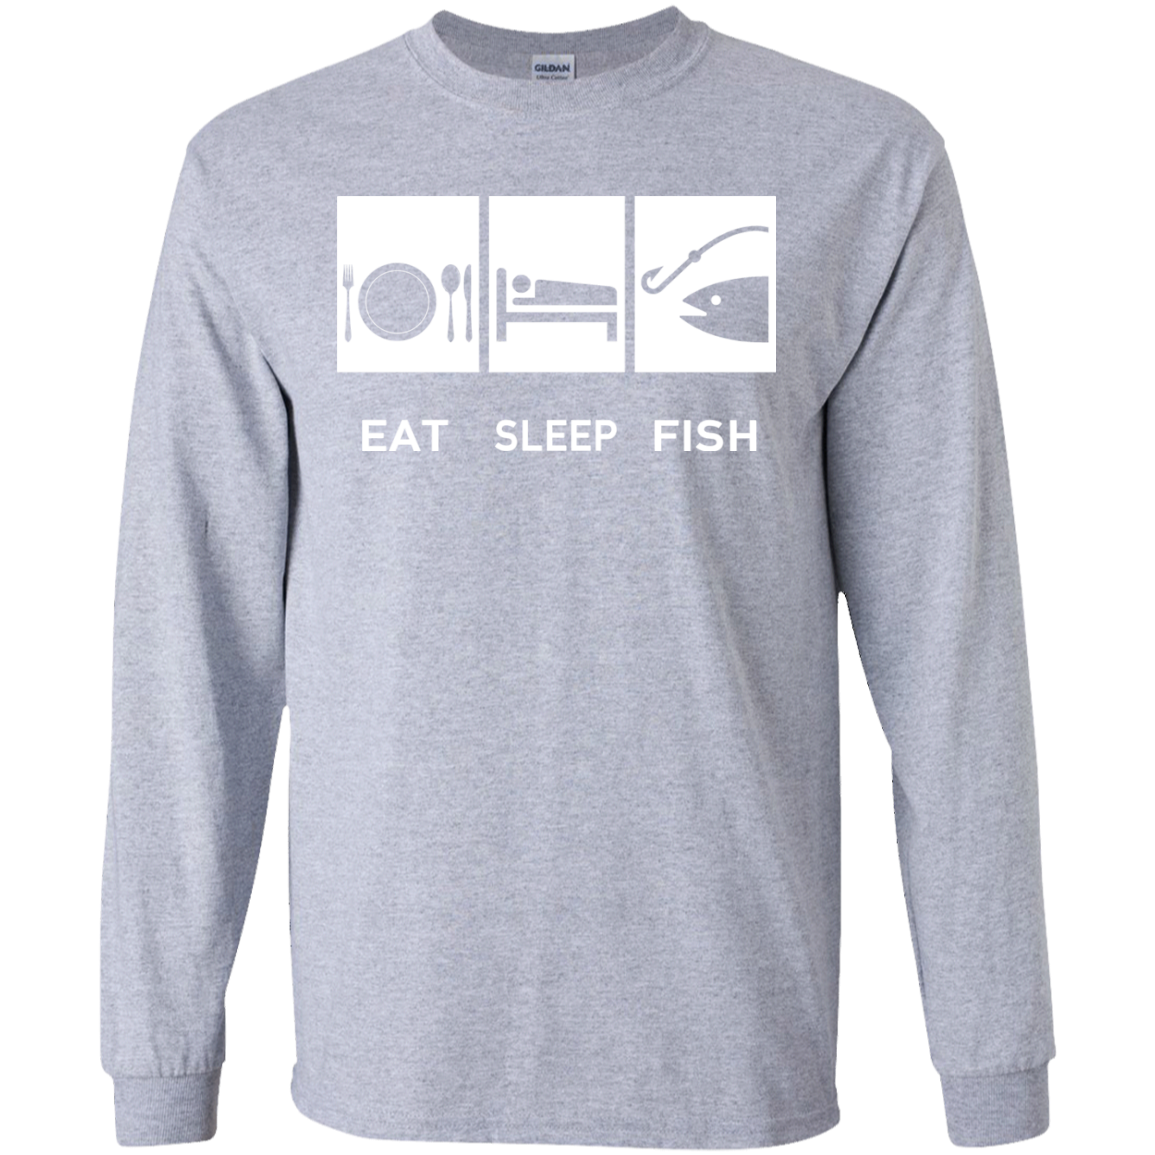 Eat Sleep Fish Long Sleeve Tees